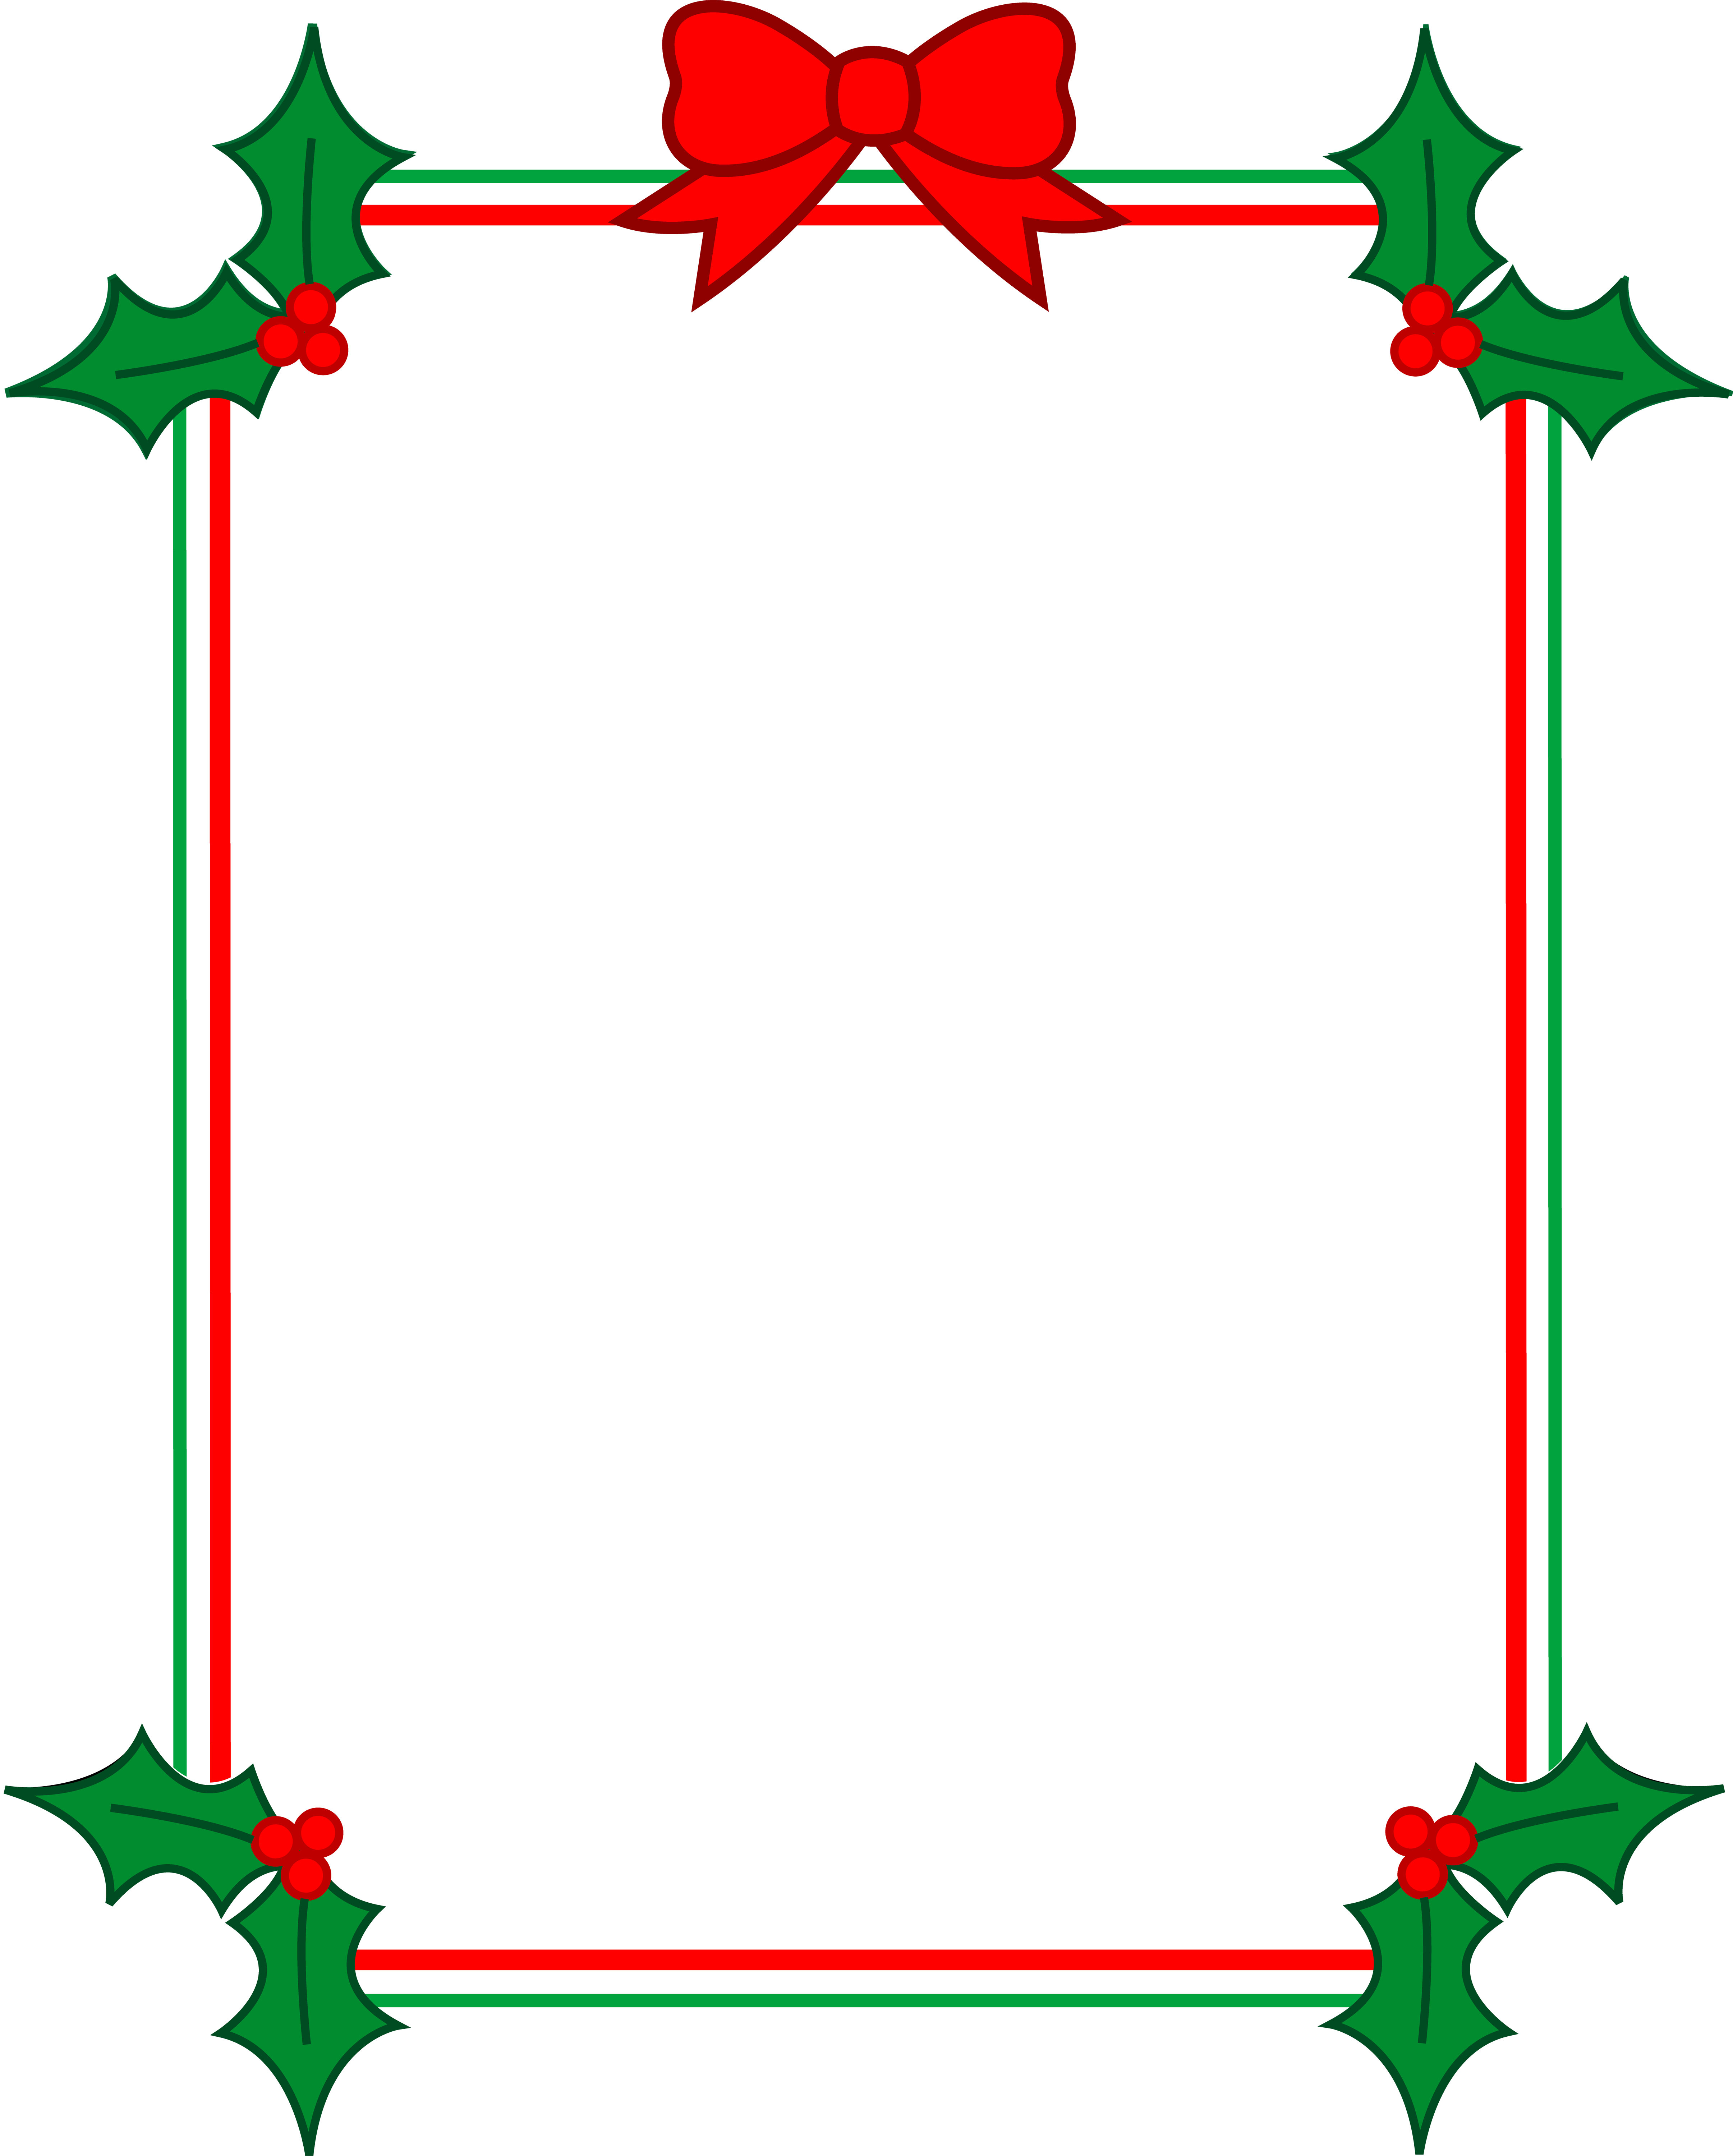 Frame clipart holiday Borders clipart Clipart art collection